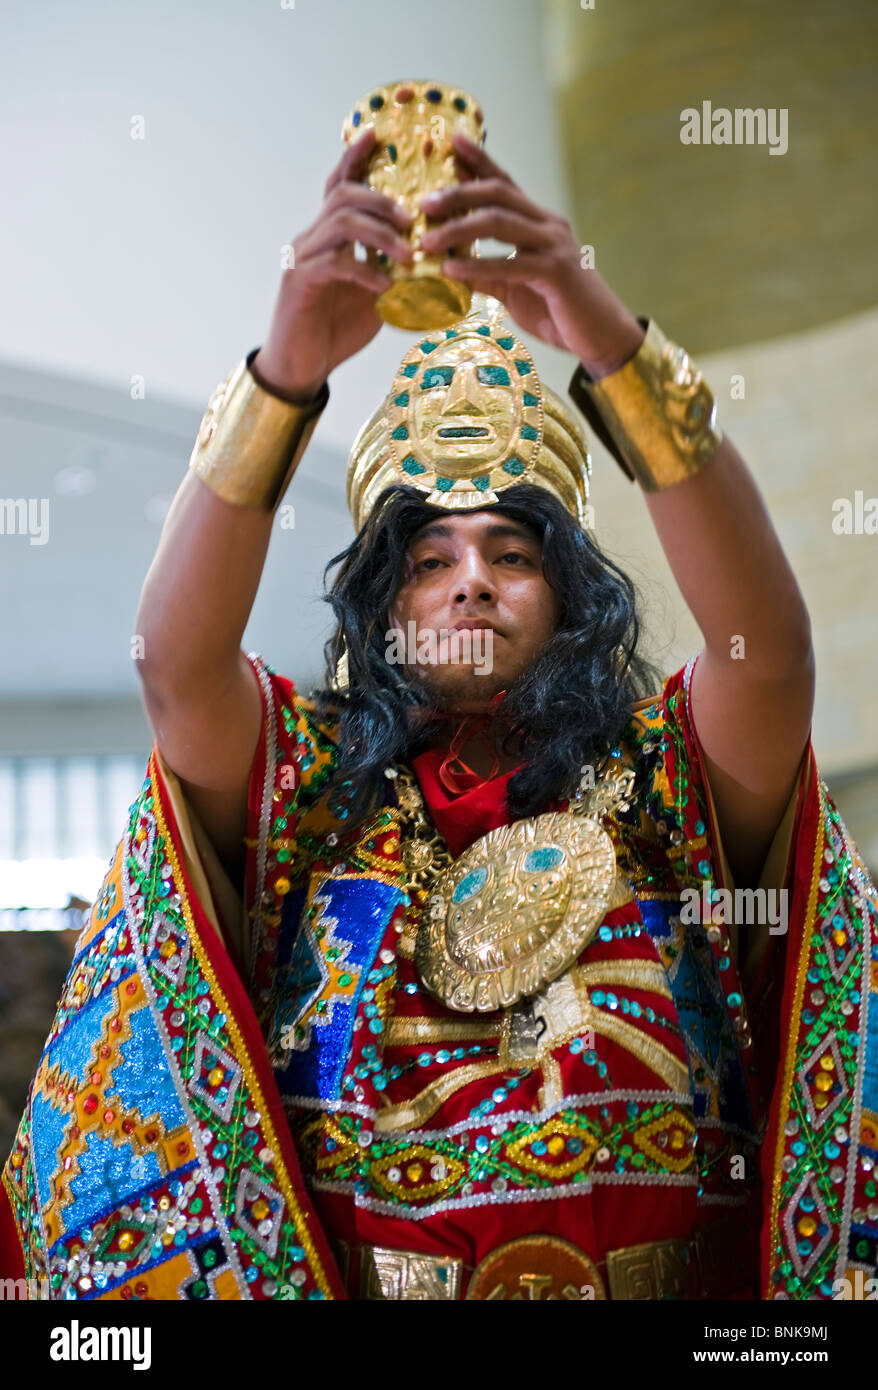 The Smithsonian Museum of the American Indian hosted 'Makiykumanta', a celebration of Peruvian culture on - Stock Image